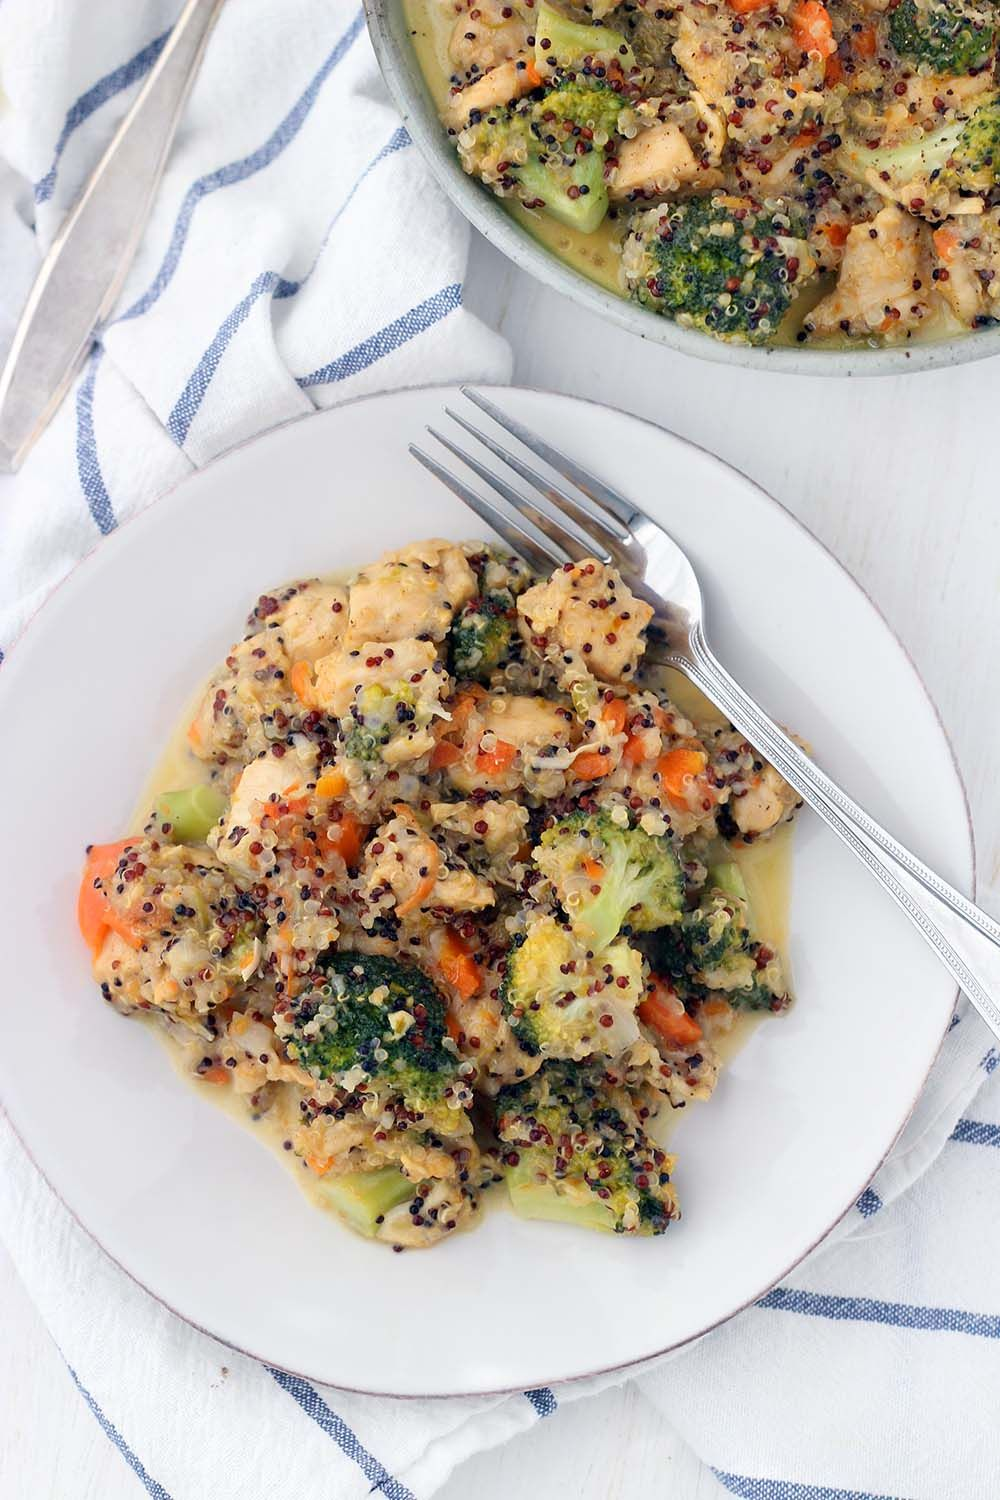 Instant Pot Chicken Broccoli And Quinoa With Cheese Recipe Instant Pot Recipes Chicken Instant Pot Quinoa Chicken Recipes